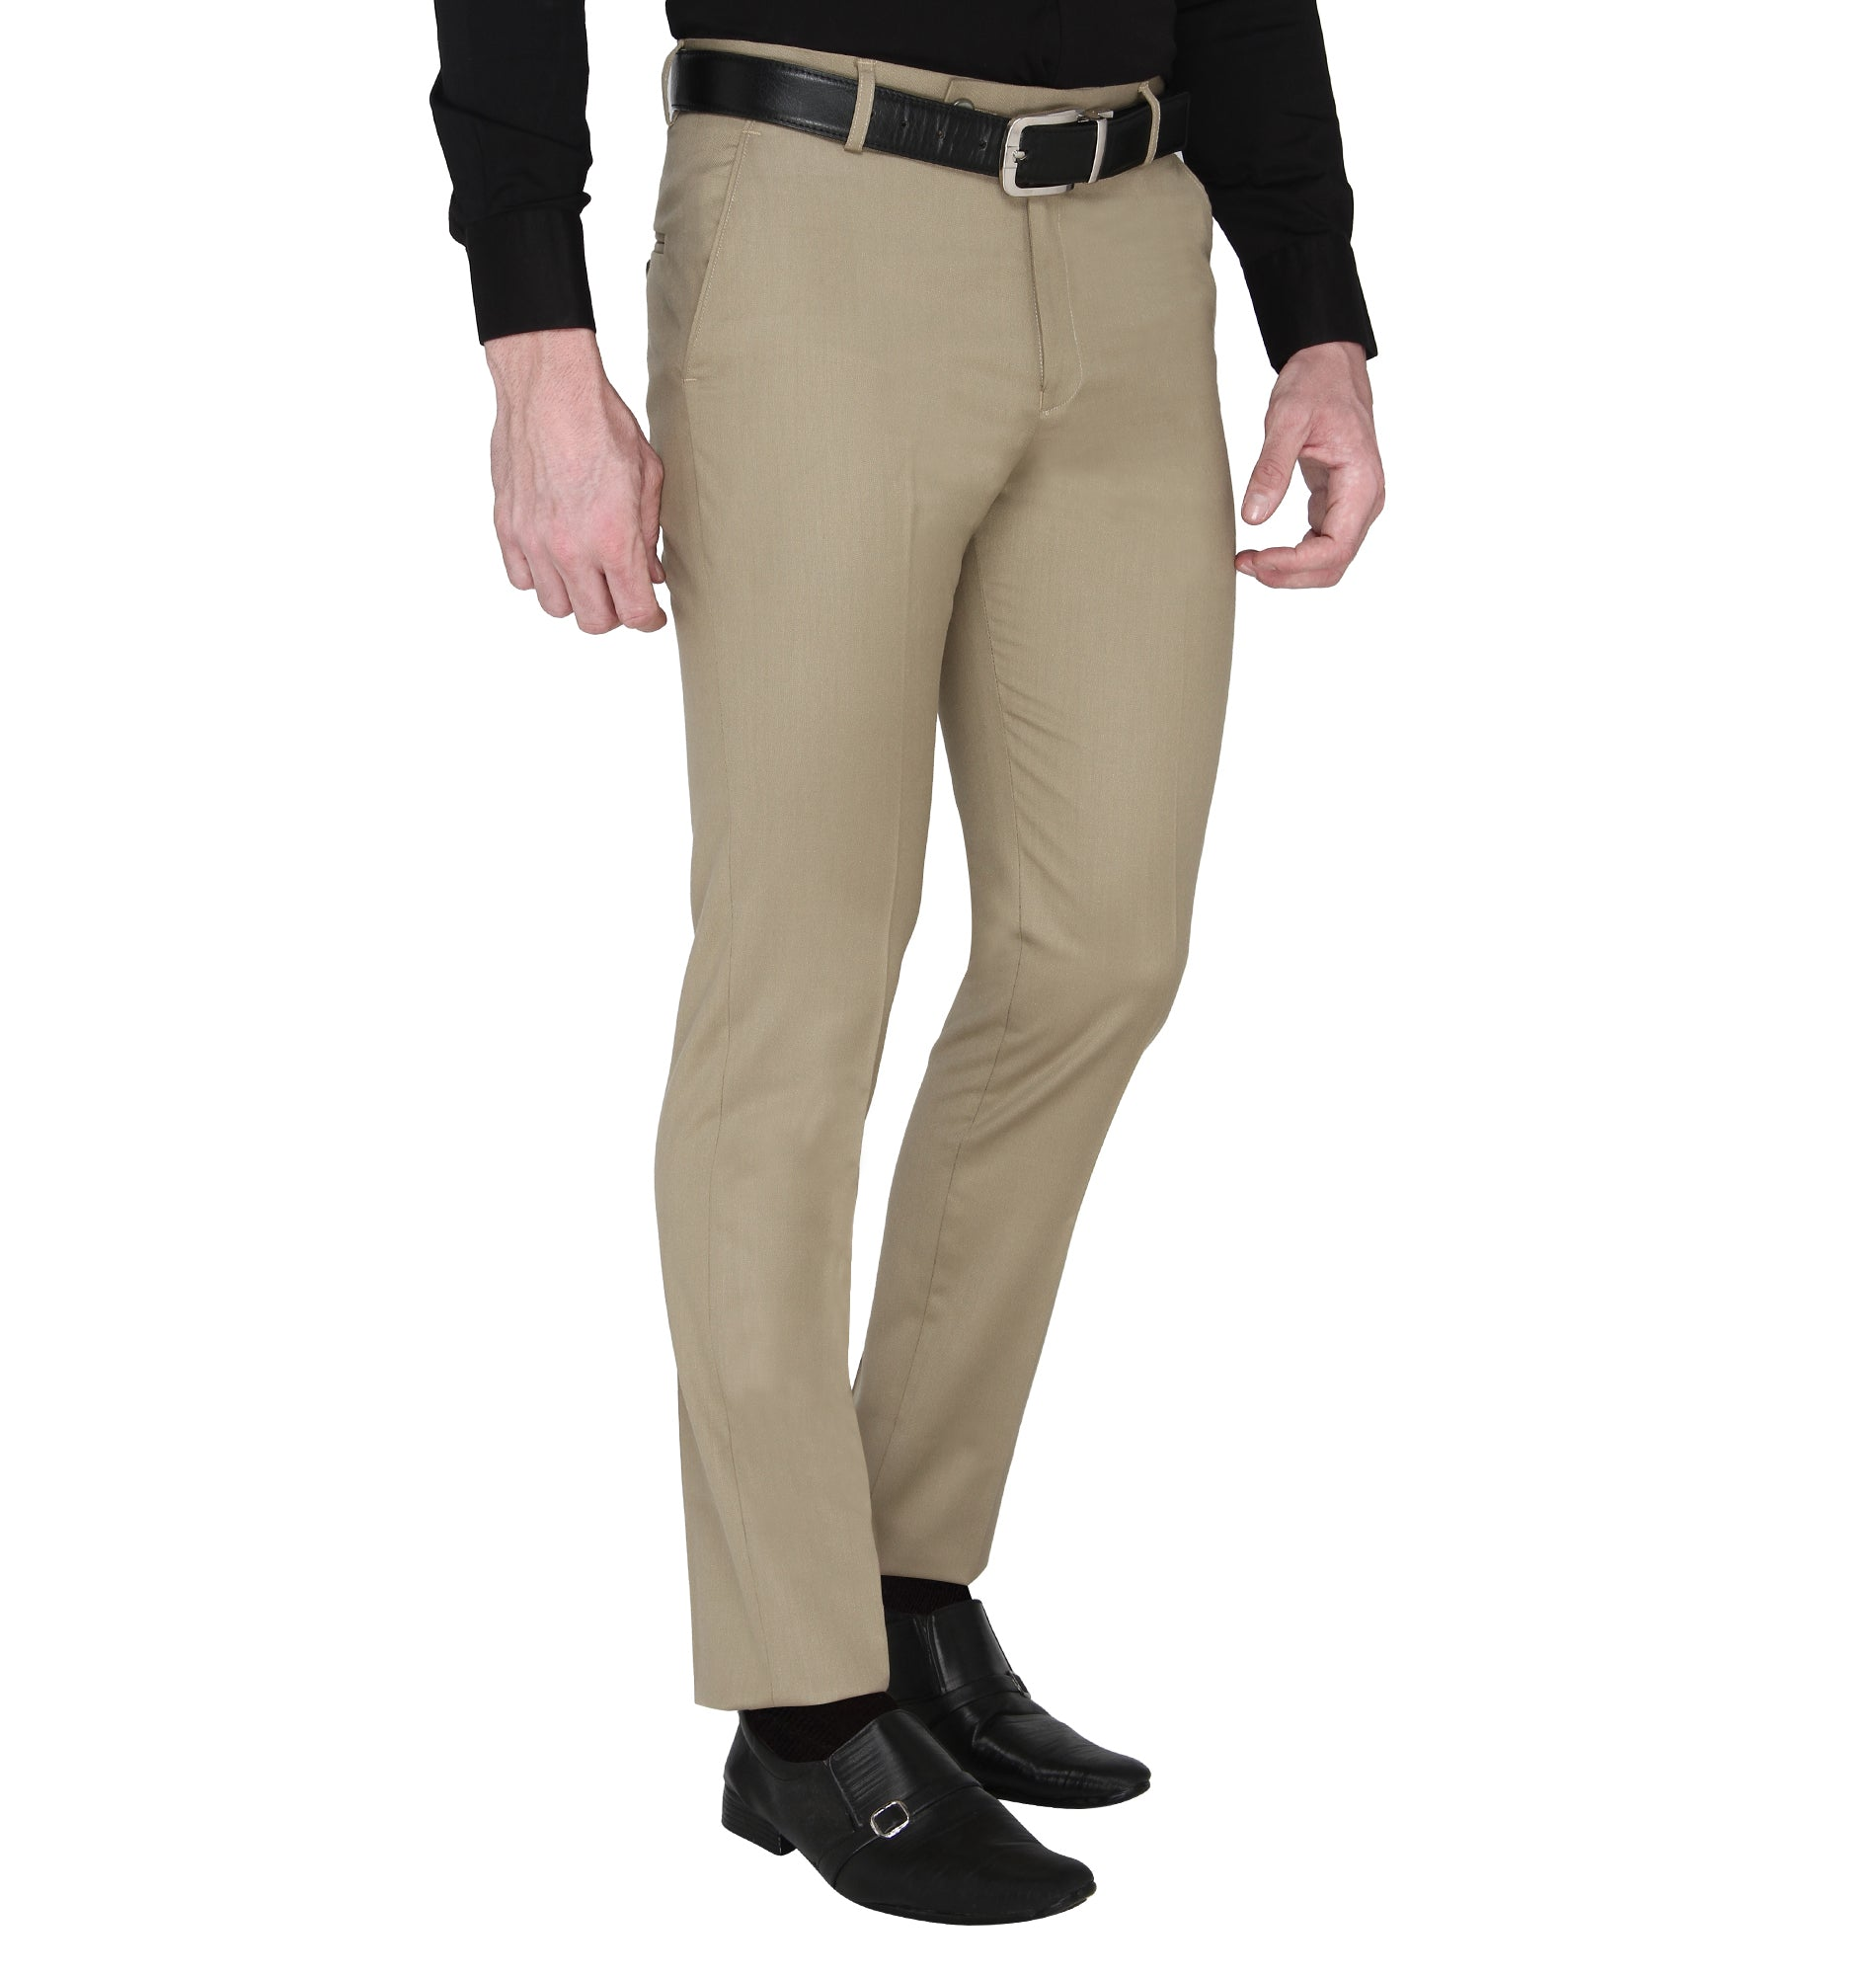 Zido Men's Slim Fit Regular  Formal Trouser - Pant ZI15088